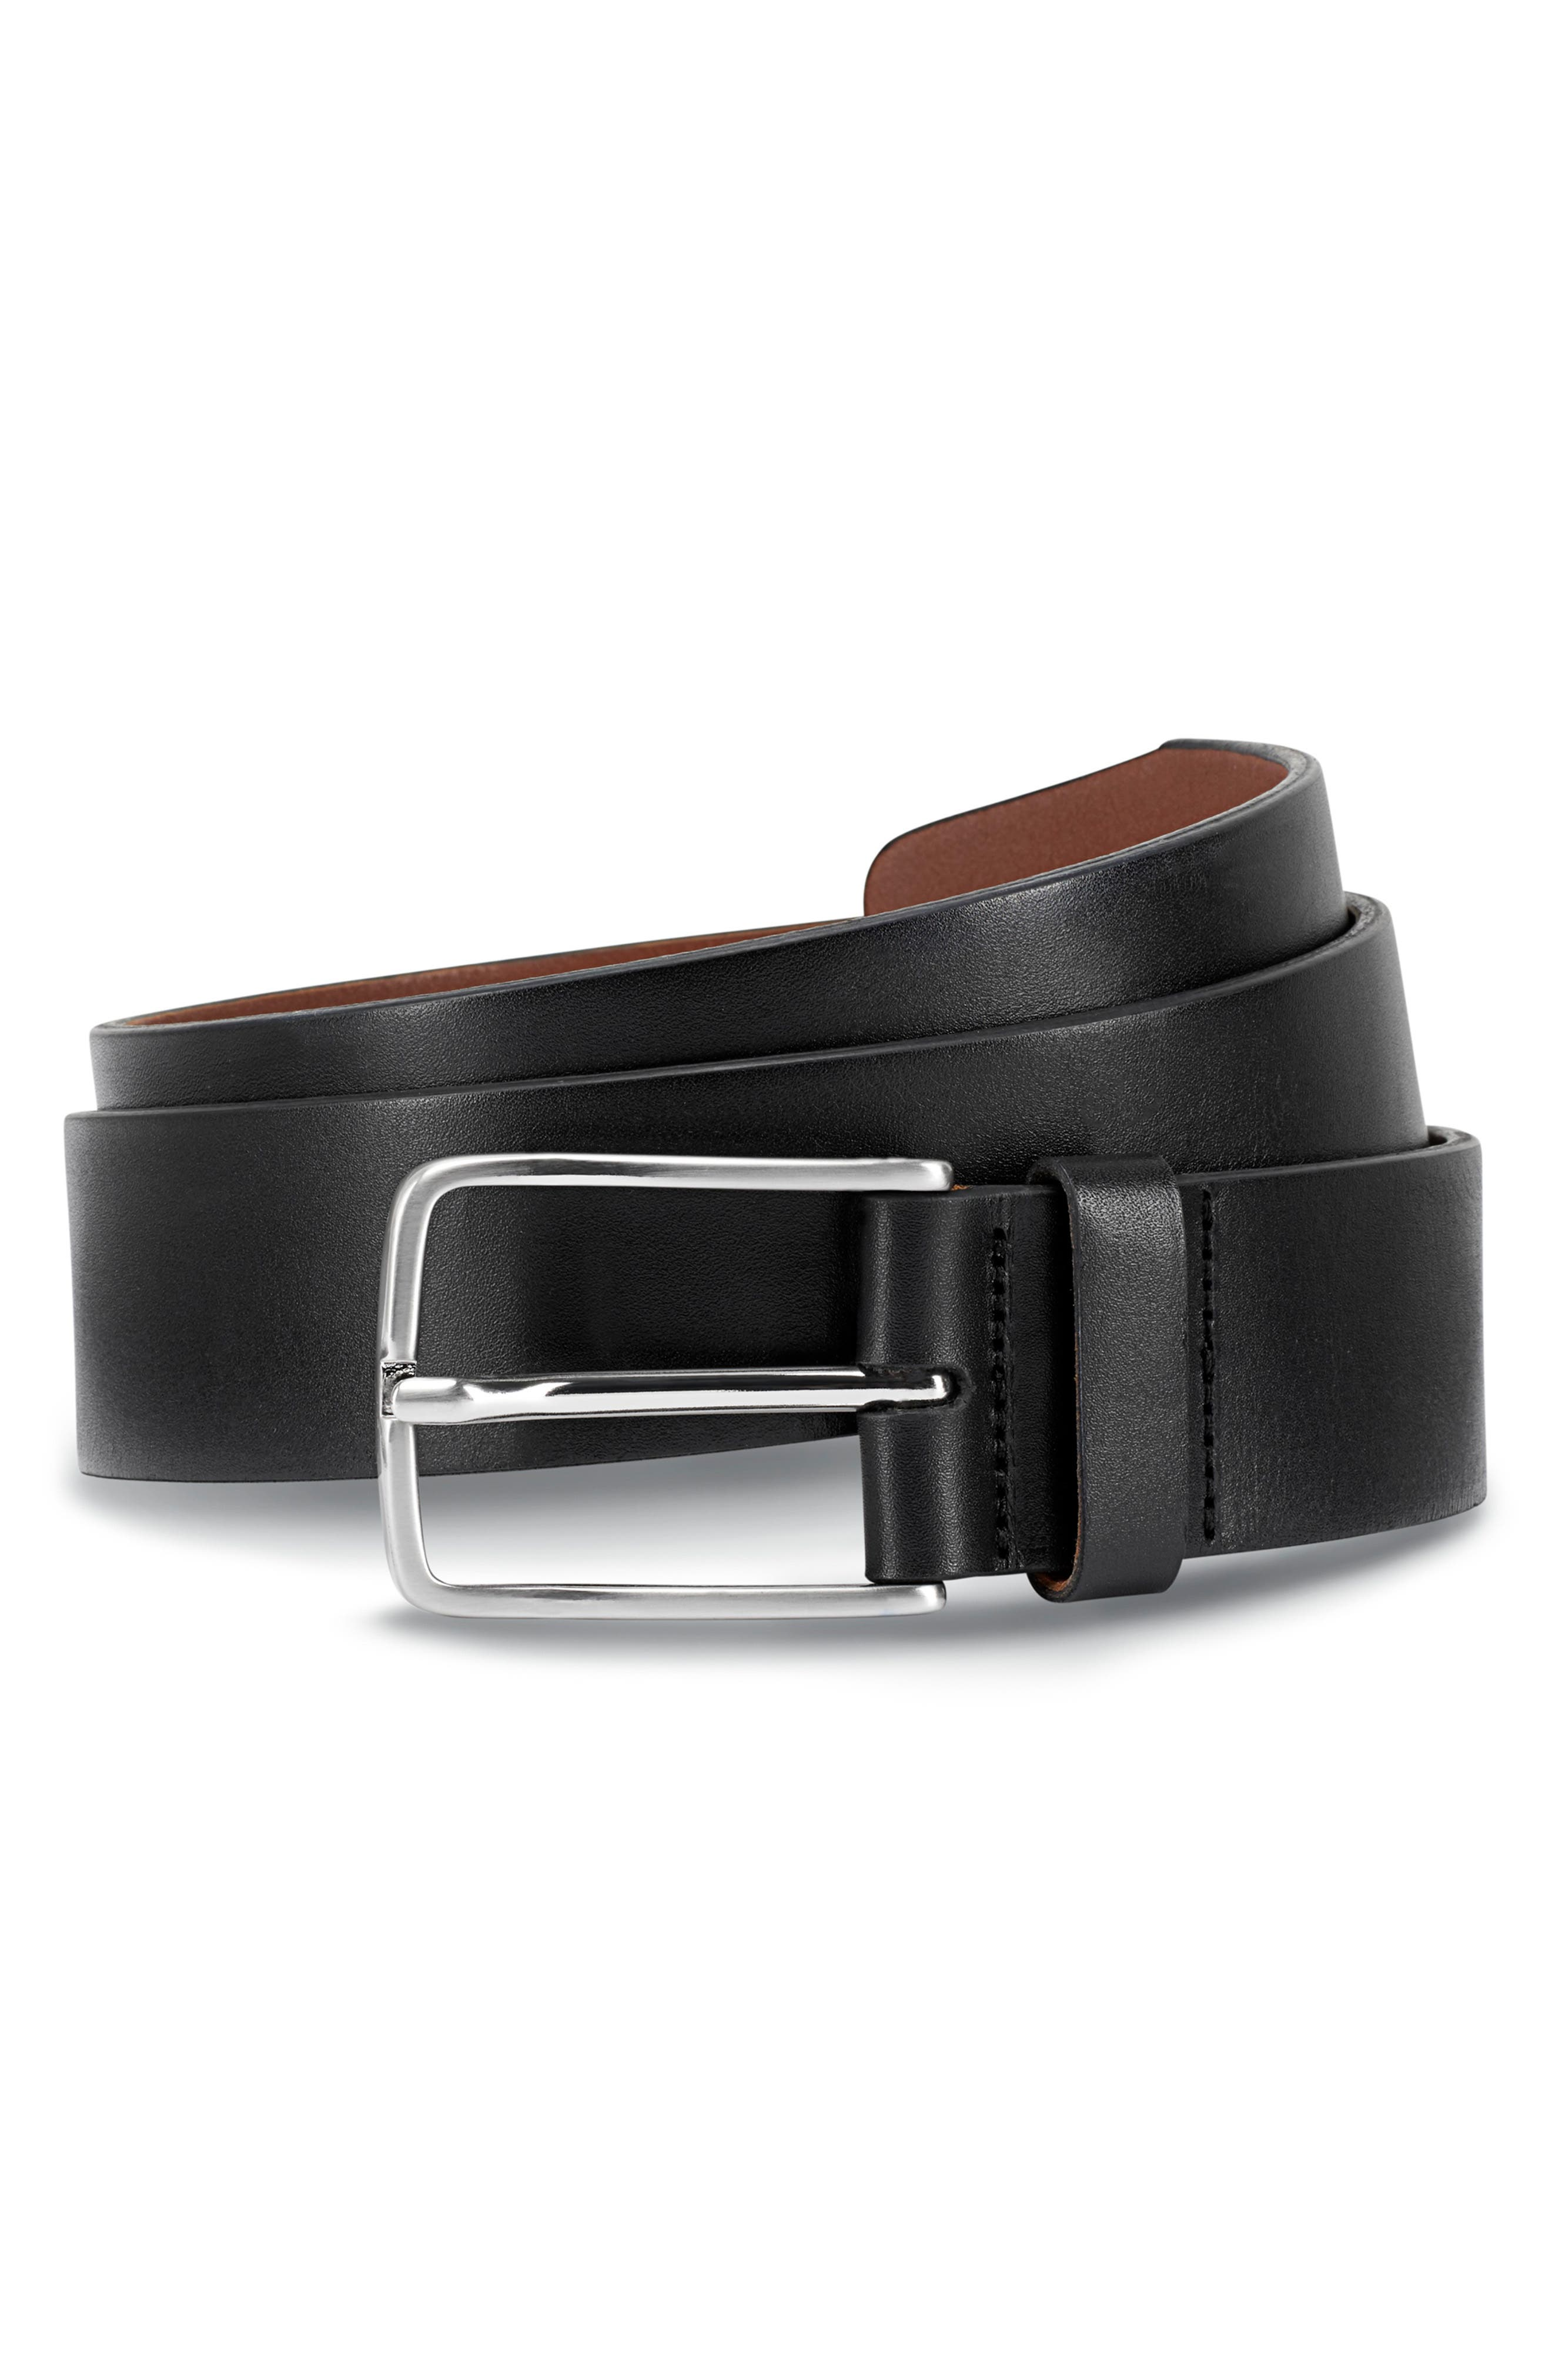 ALLEN EDMONDS, Broadway Avenue Leather Belt, Main thumbnail 1, color, BLACK CALFSKIN